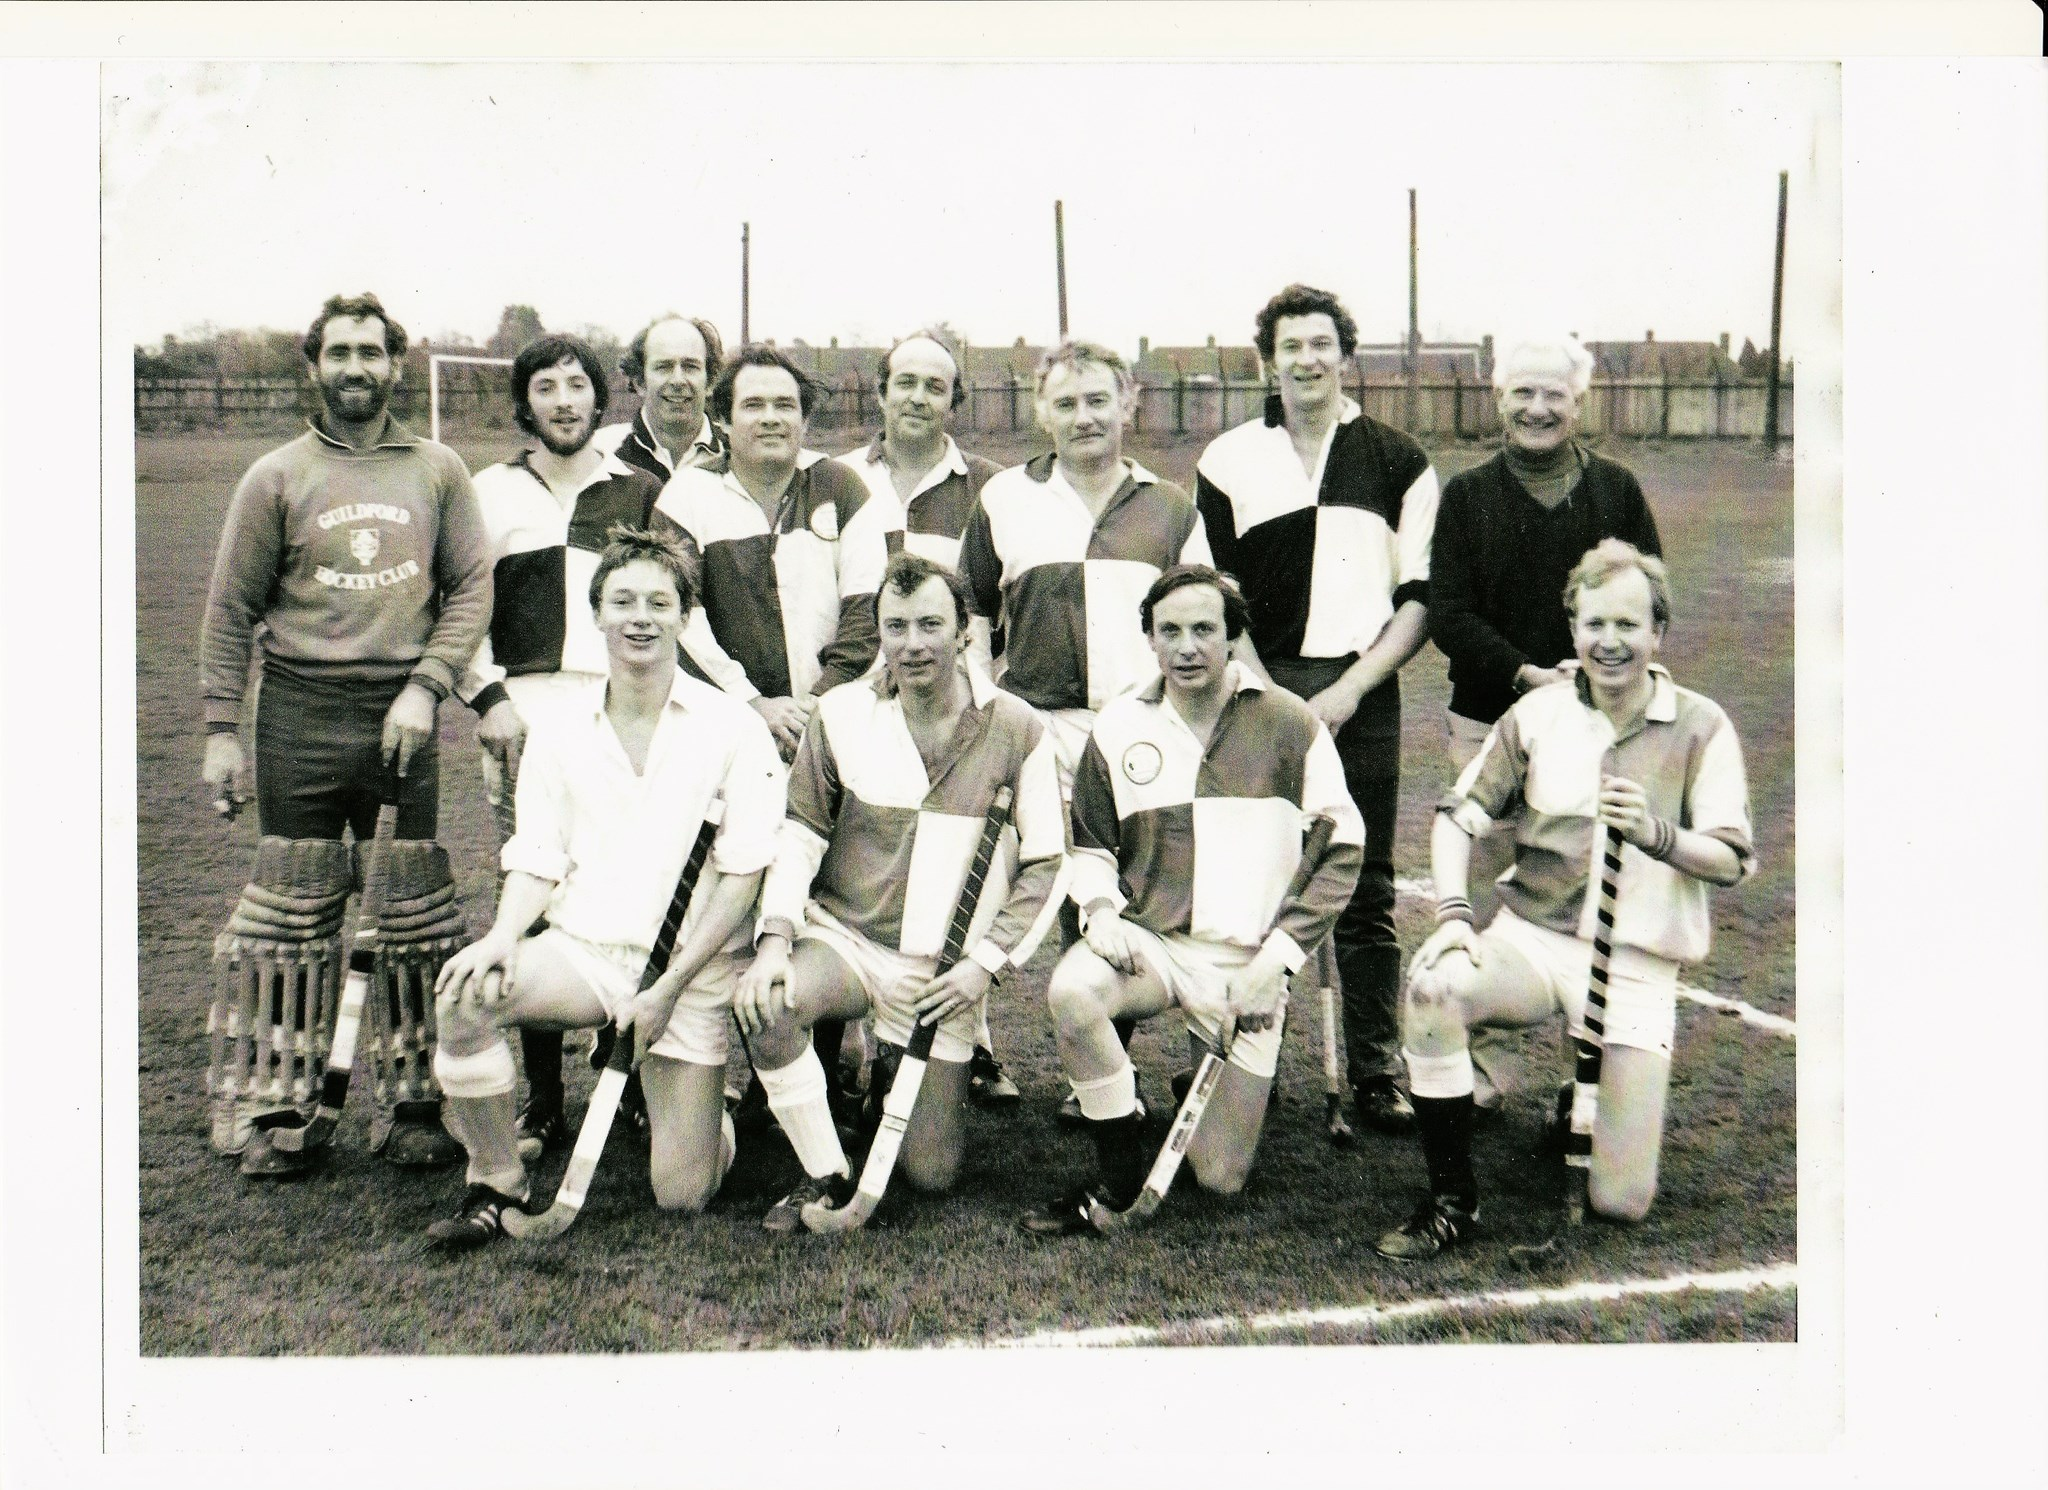 Jolyon Hockey 4 April 1981, Roger Lane (GK), Nick Bevan, Ken Luckett, Jol, Phil Cavalier , Keith Please, Robin Wales, Nolan Nighton, David Knapp, Julian Betts, Andy McMillan, Keith Smith (Rev)